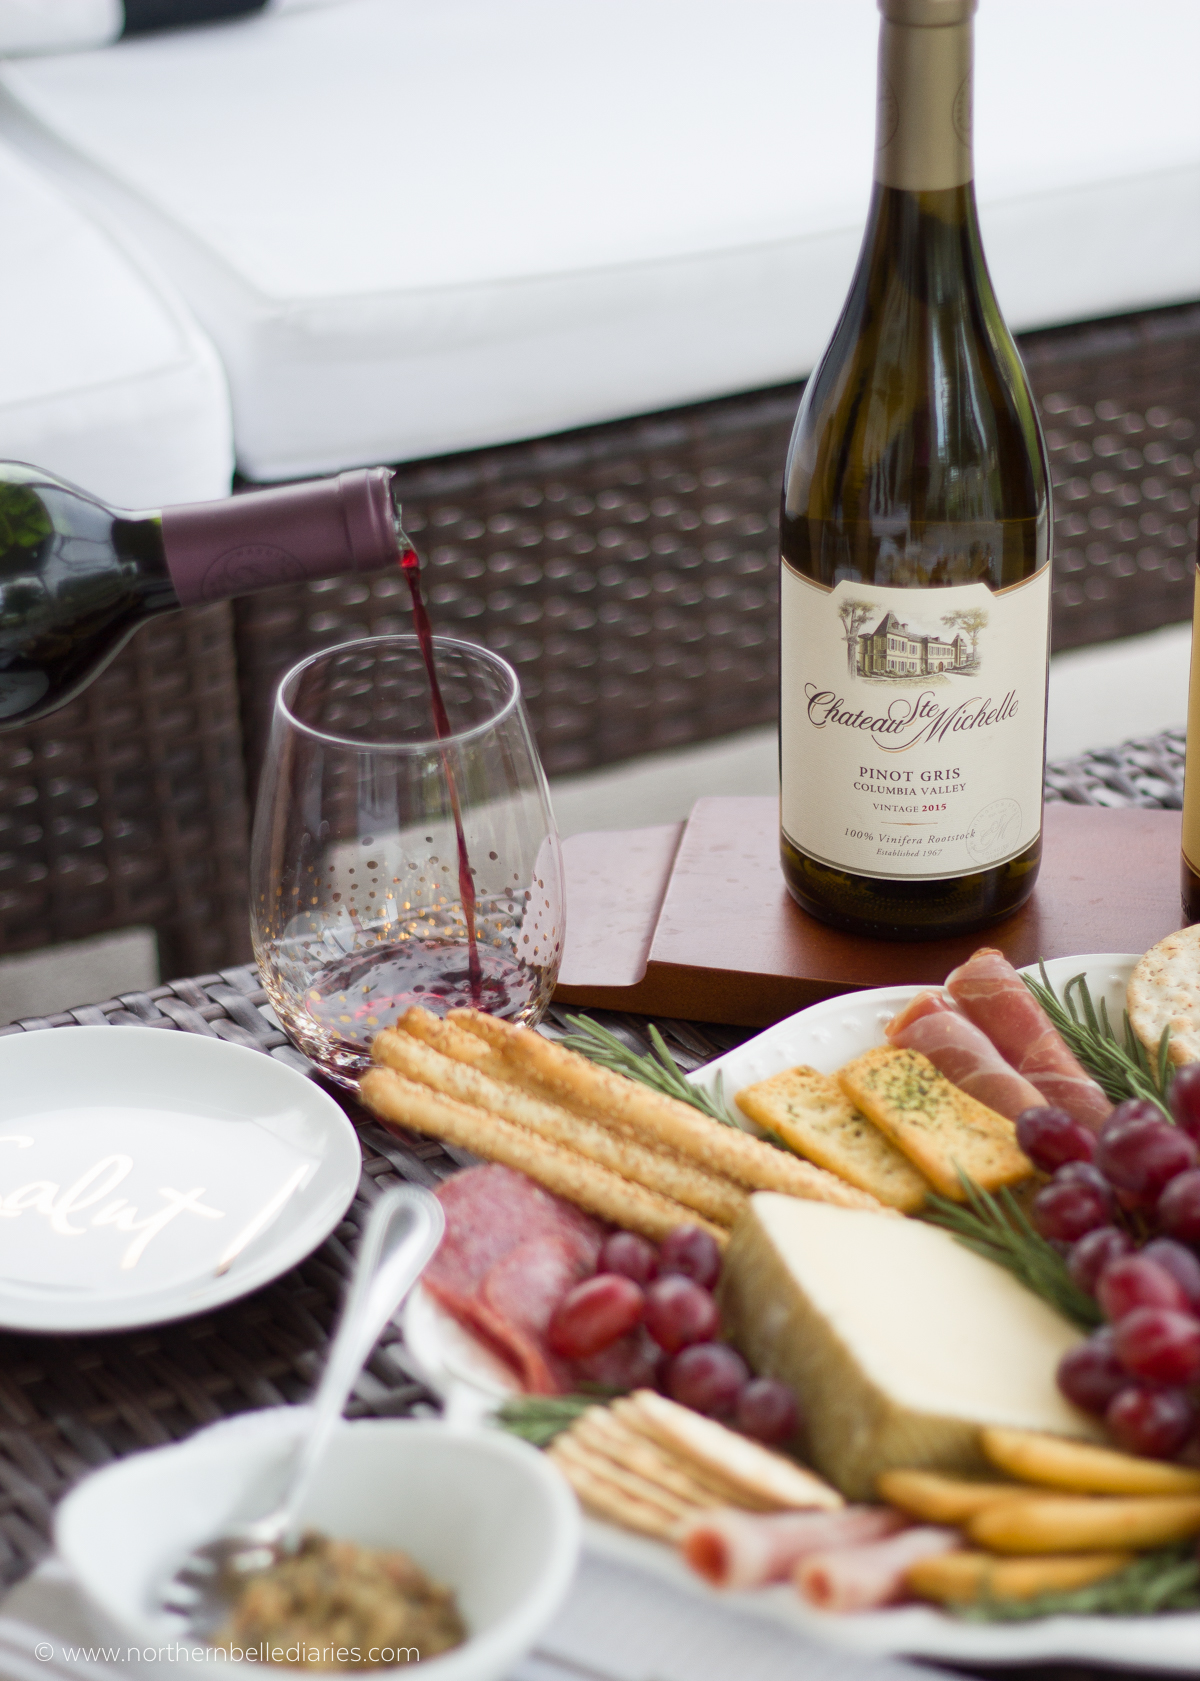 One perfect sip moment with Chateau Ste Michelle wine